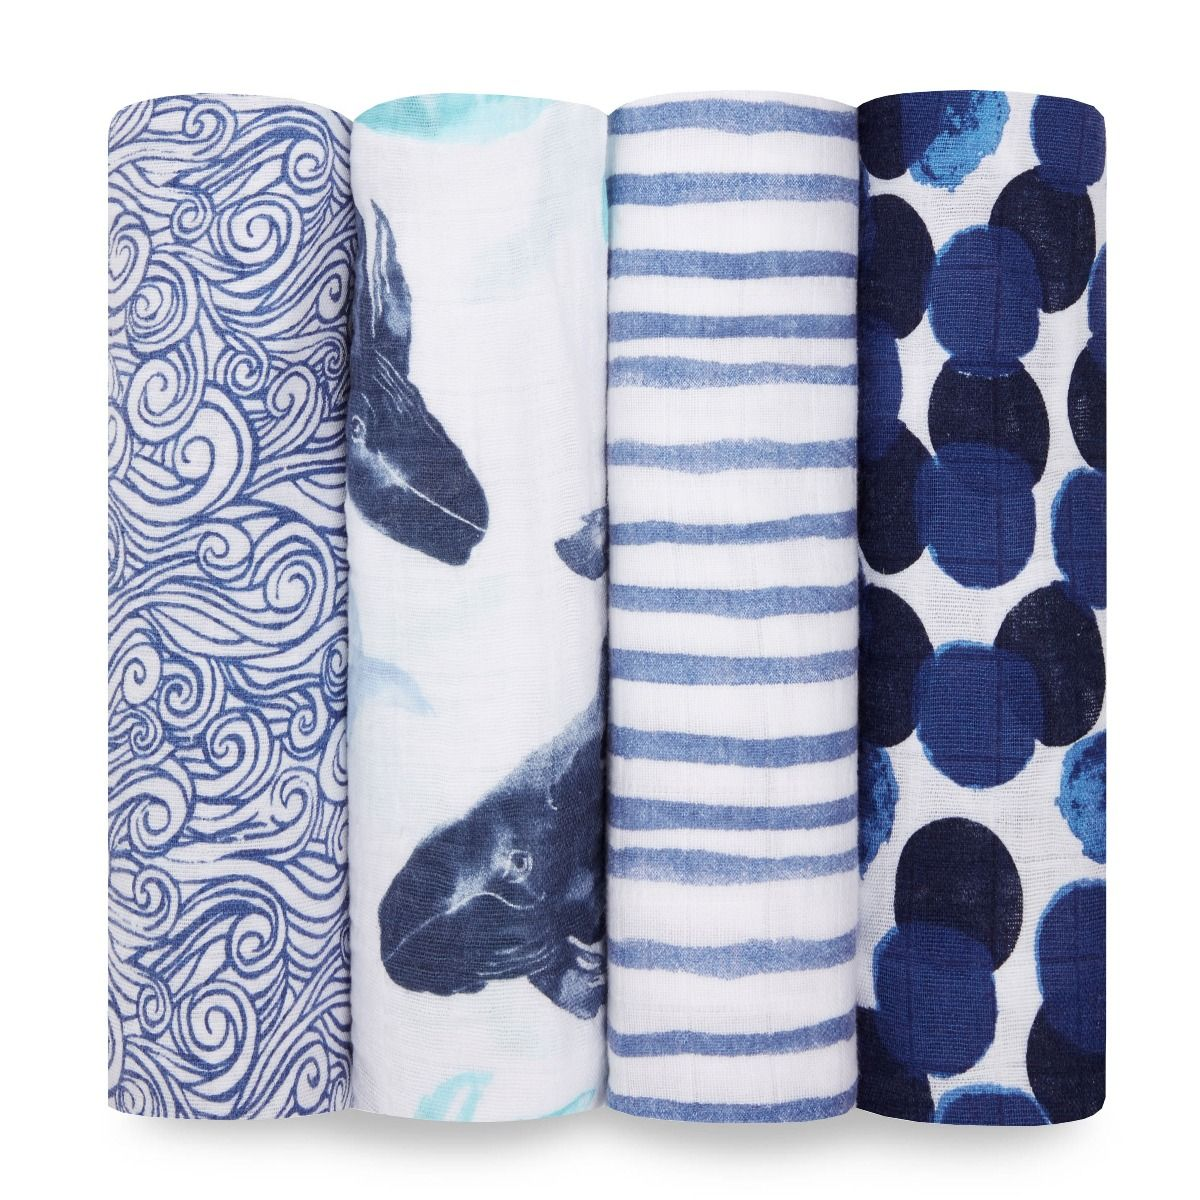 7073ad92bb 47″ Seafaring Classic Swaddle Blanket (4-Pack) by Aden + Anais ...